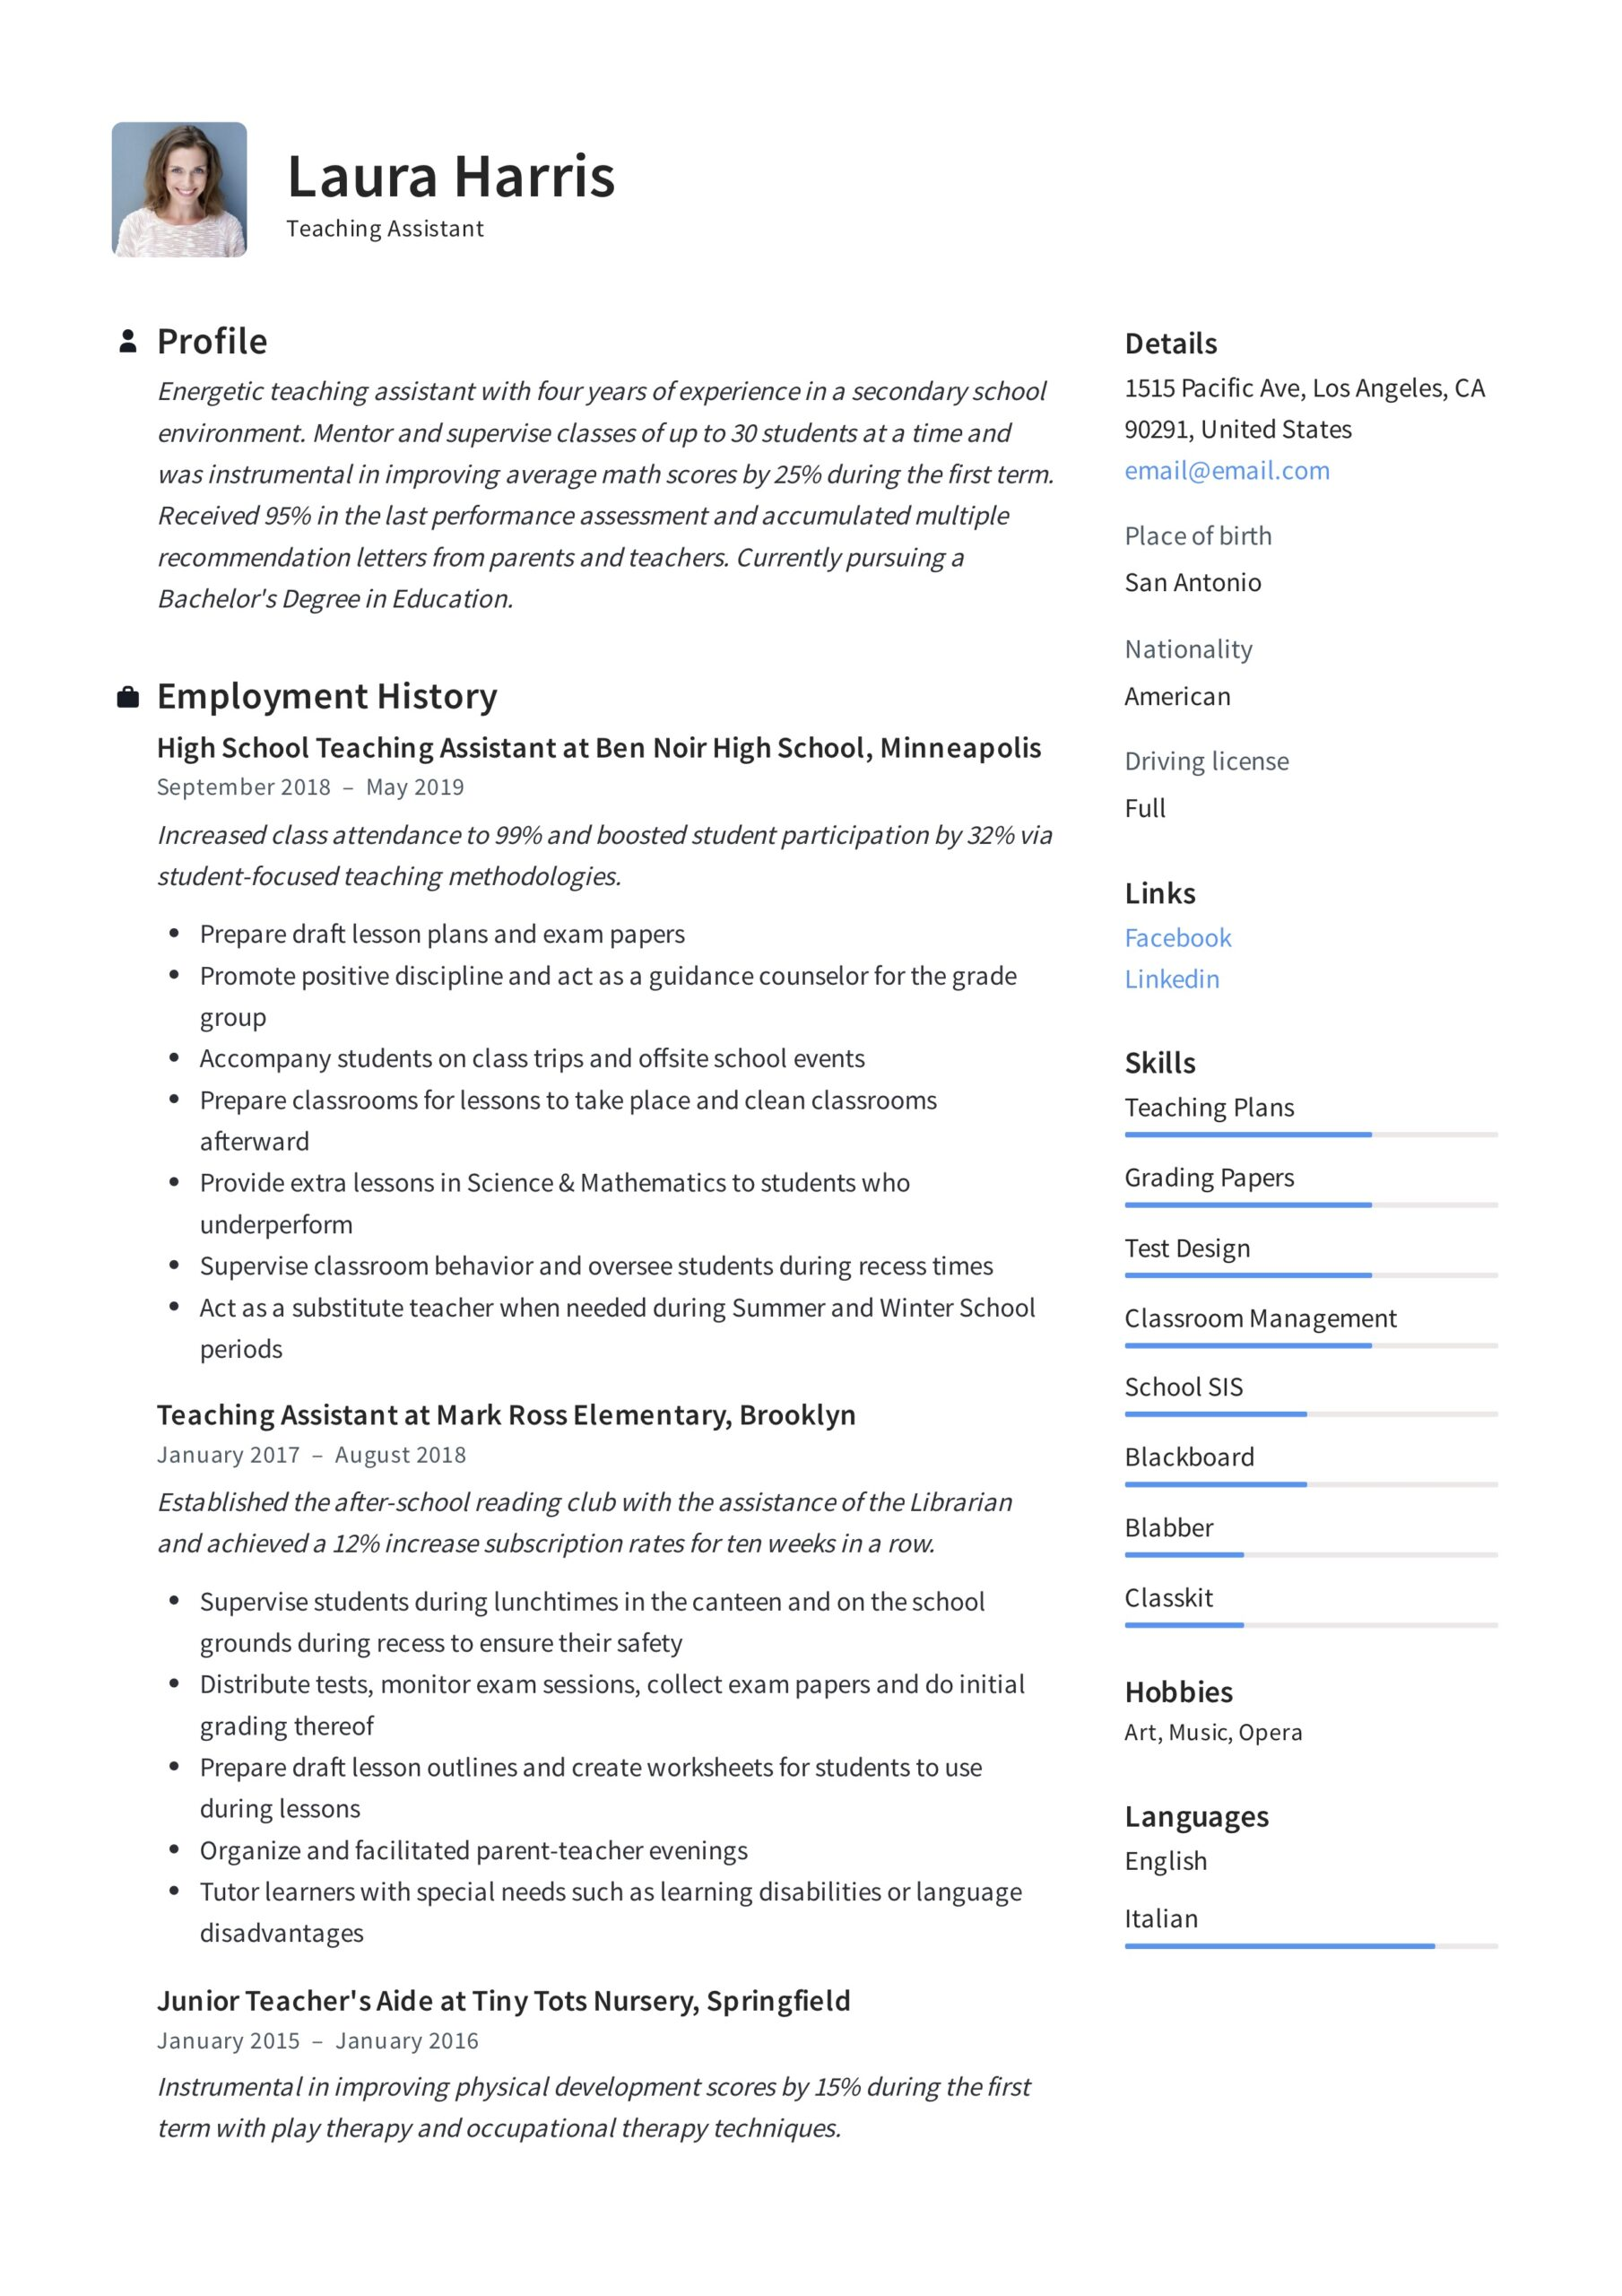 teaching assistant resume writing guide templates pdf template for teacher aide medical Resume Resume Template For Teacher Aide